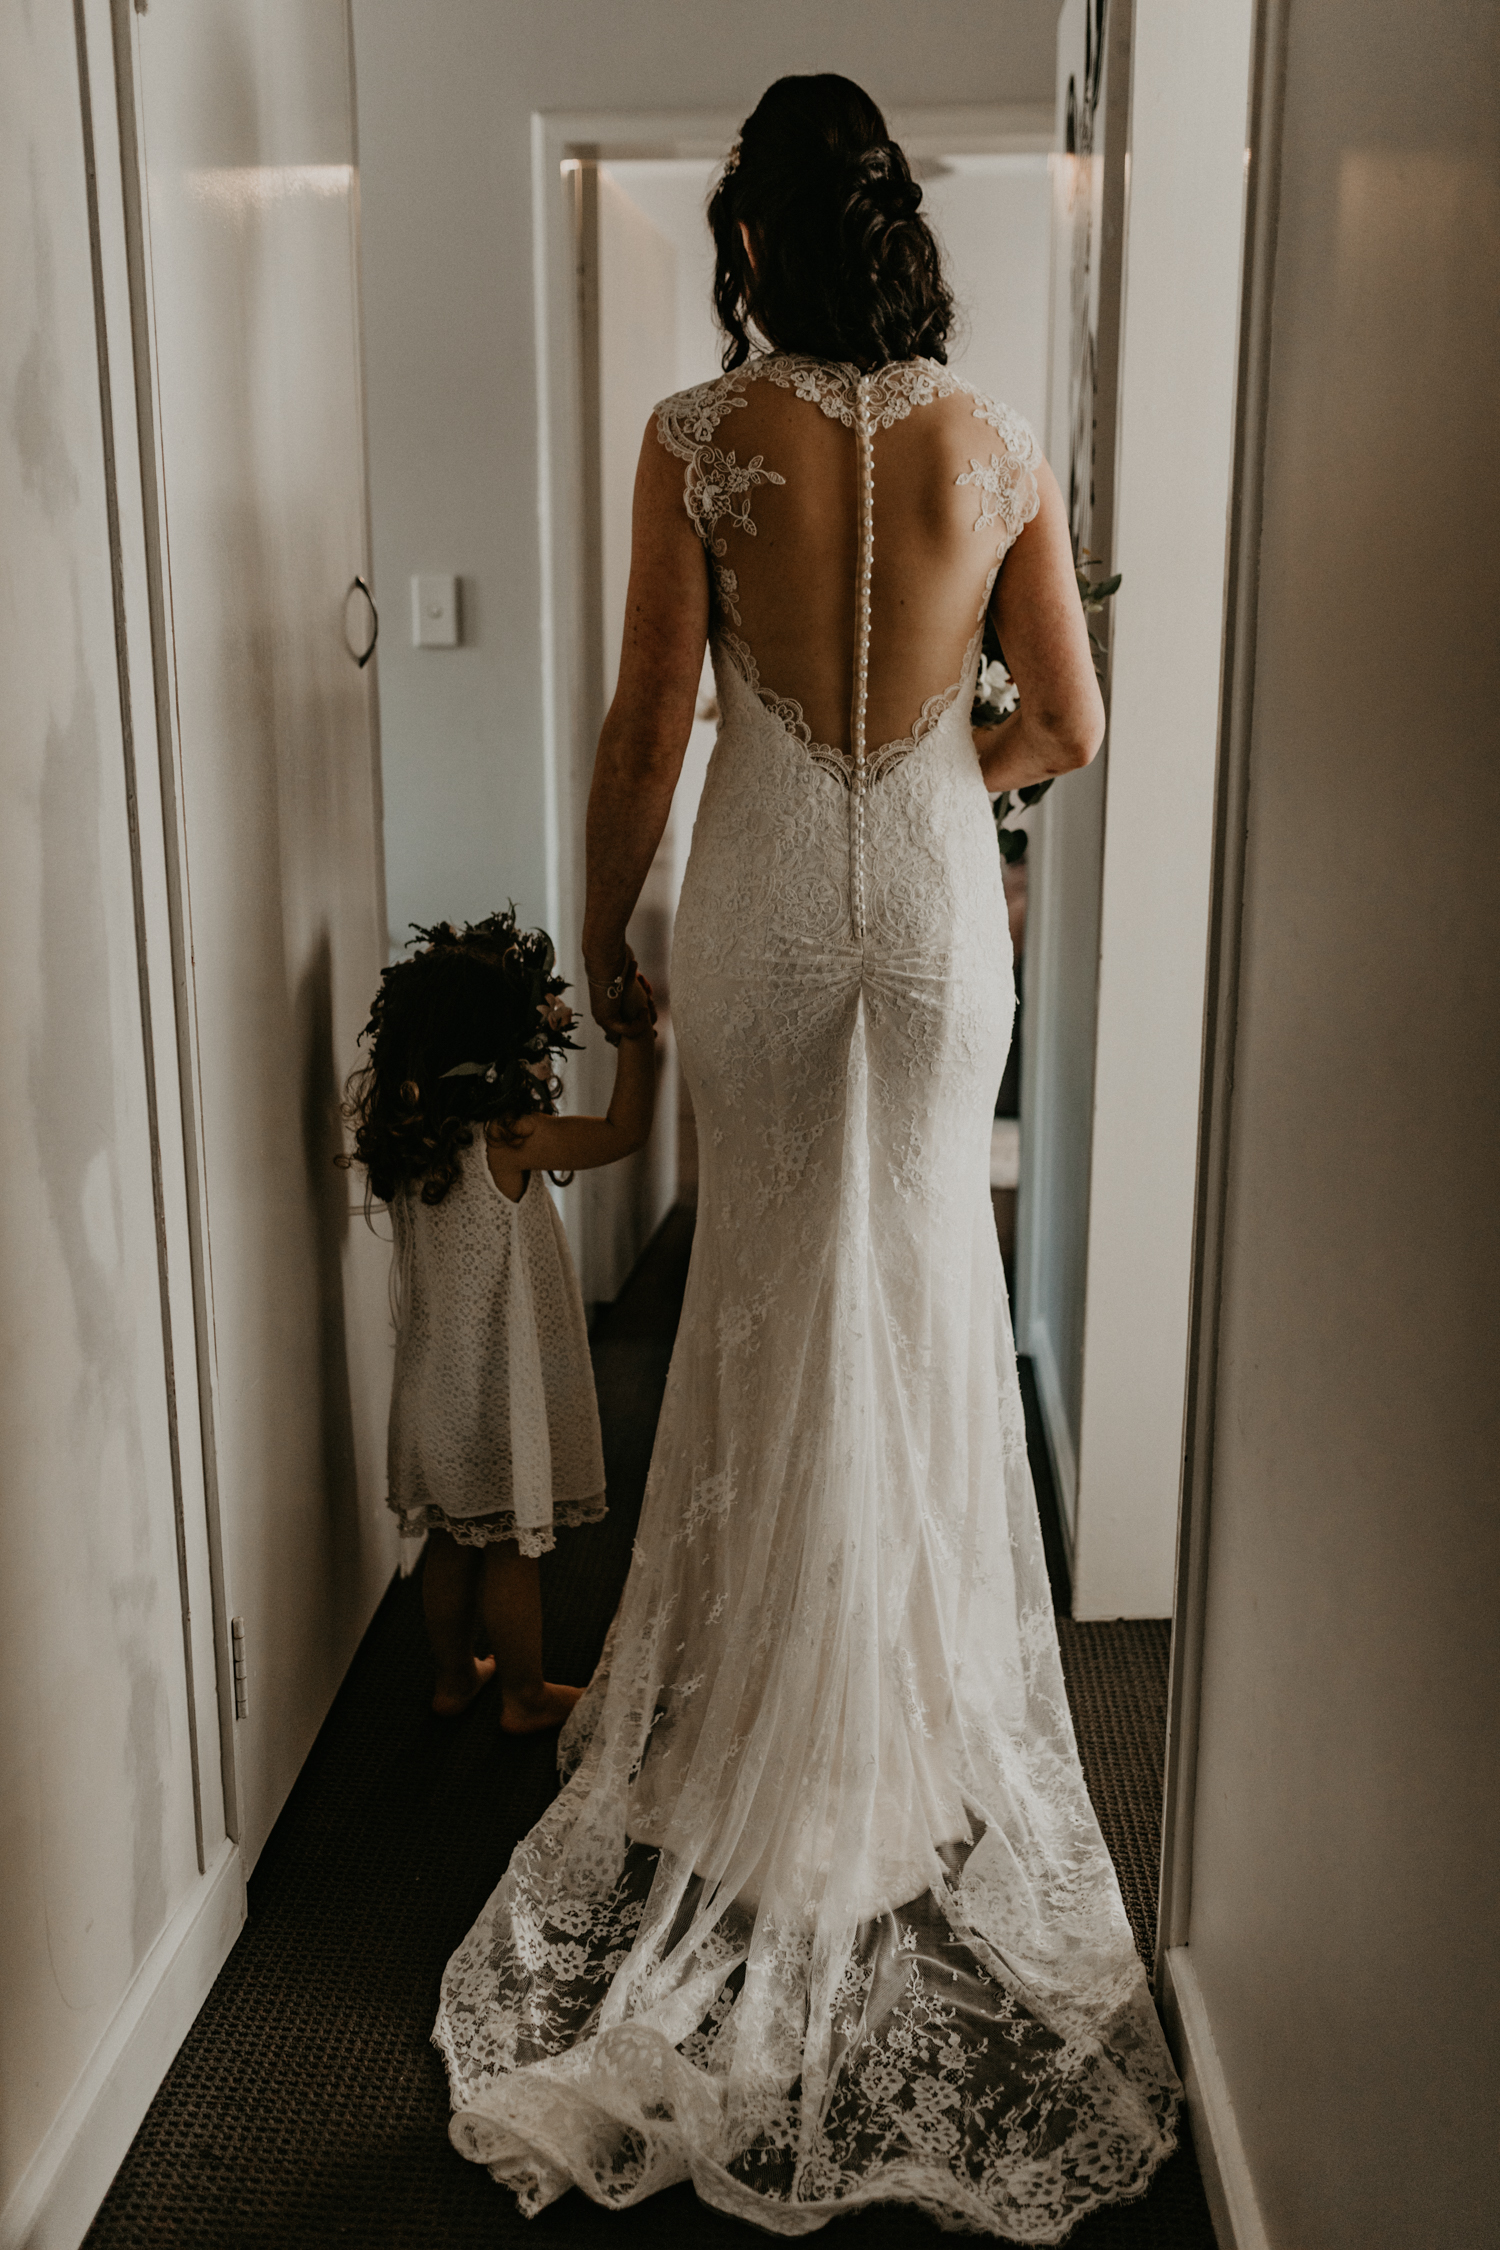 Sydney Romantic Authentic Natural Free Spirit Candid Wedding Photography-24.jpg